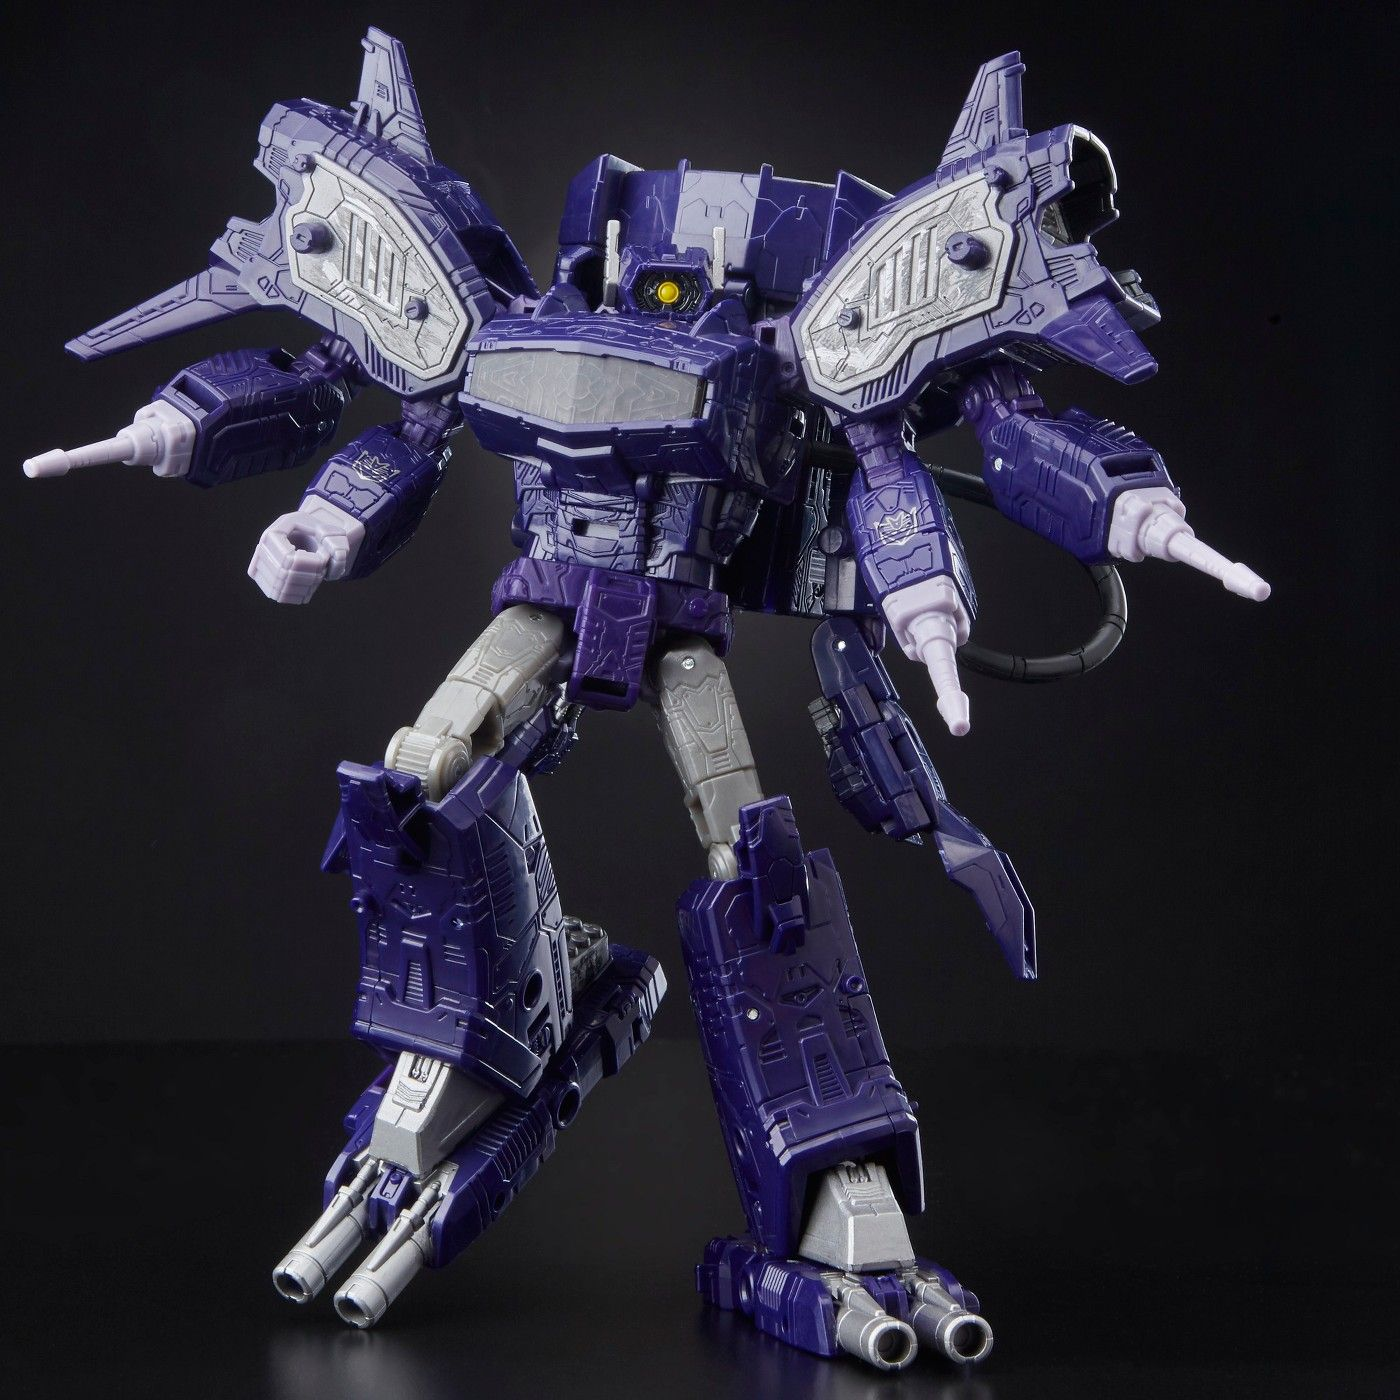 Siege Leader Class Shockwave WFC-S14 Transformers Generations War for Cybertron